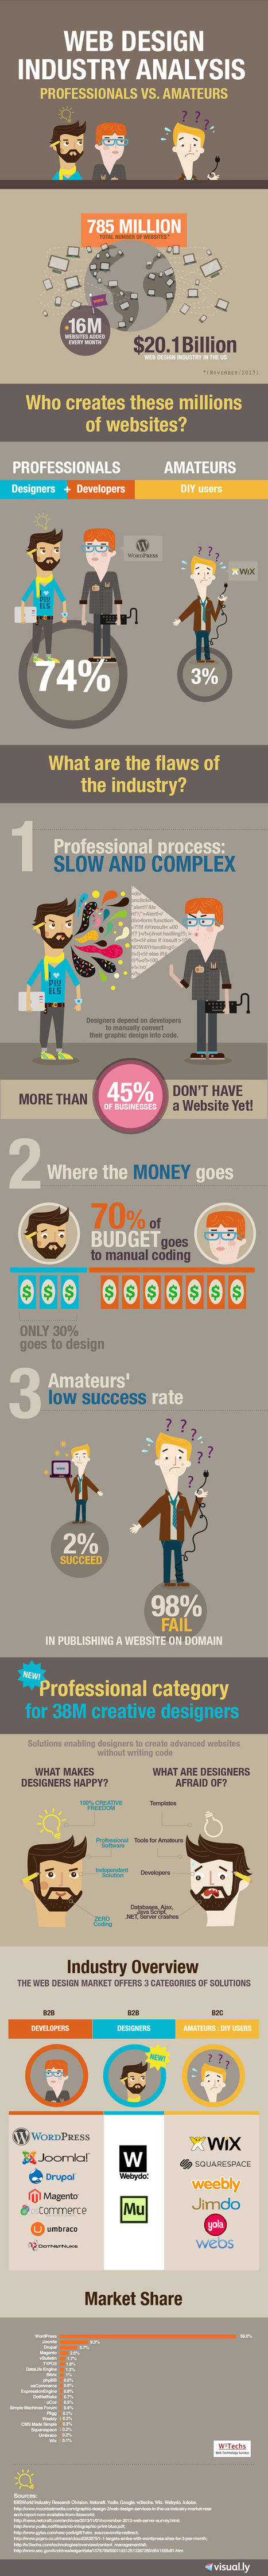 Web Design Industry Analysis – Professionals vs. Amateurs [Infographic] | Web Design | Scoop.it